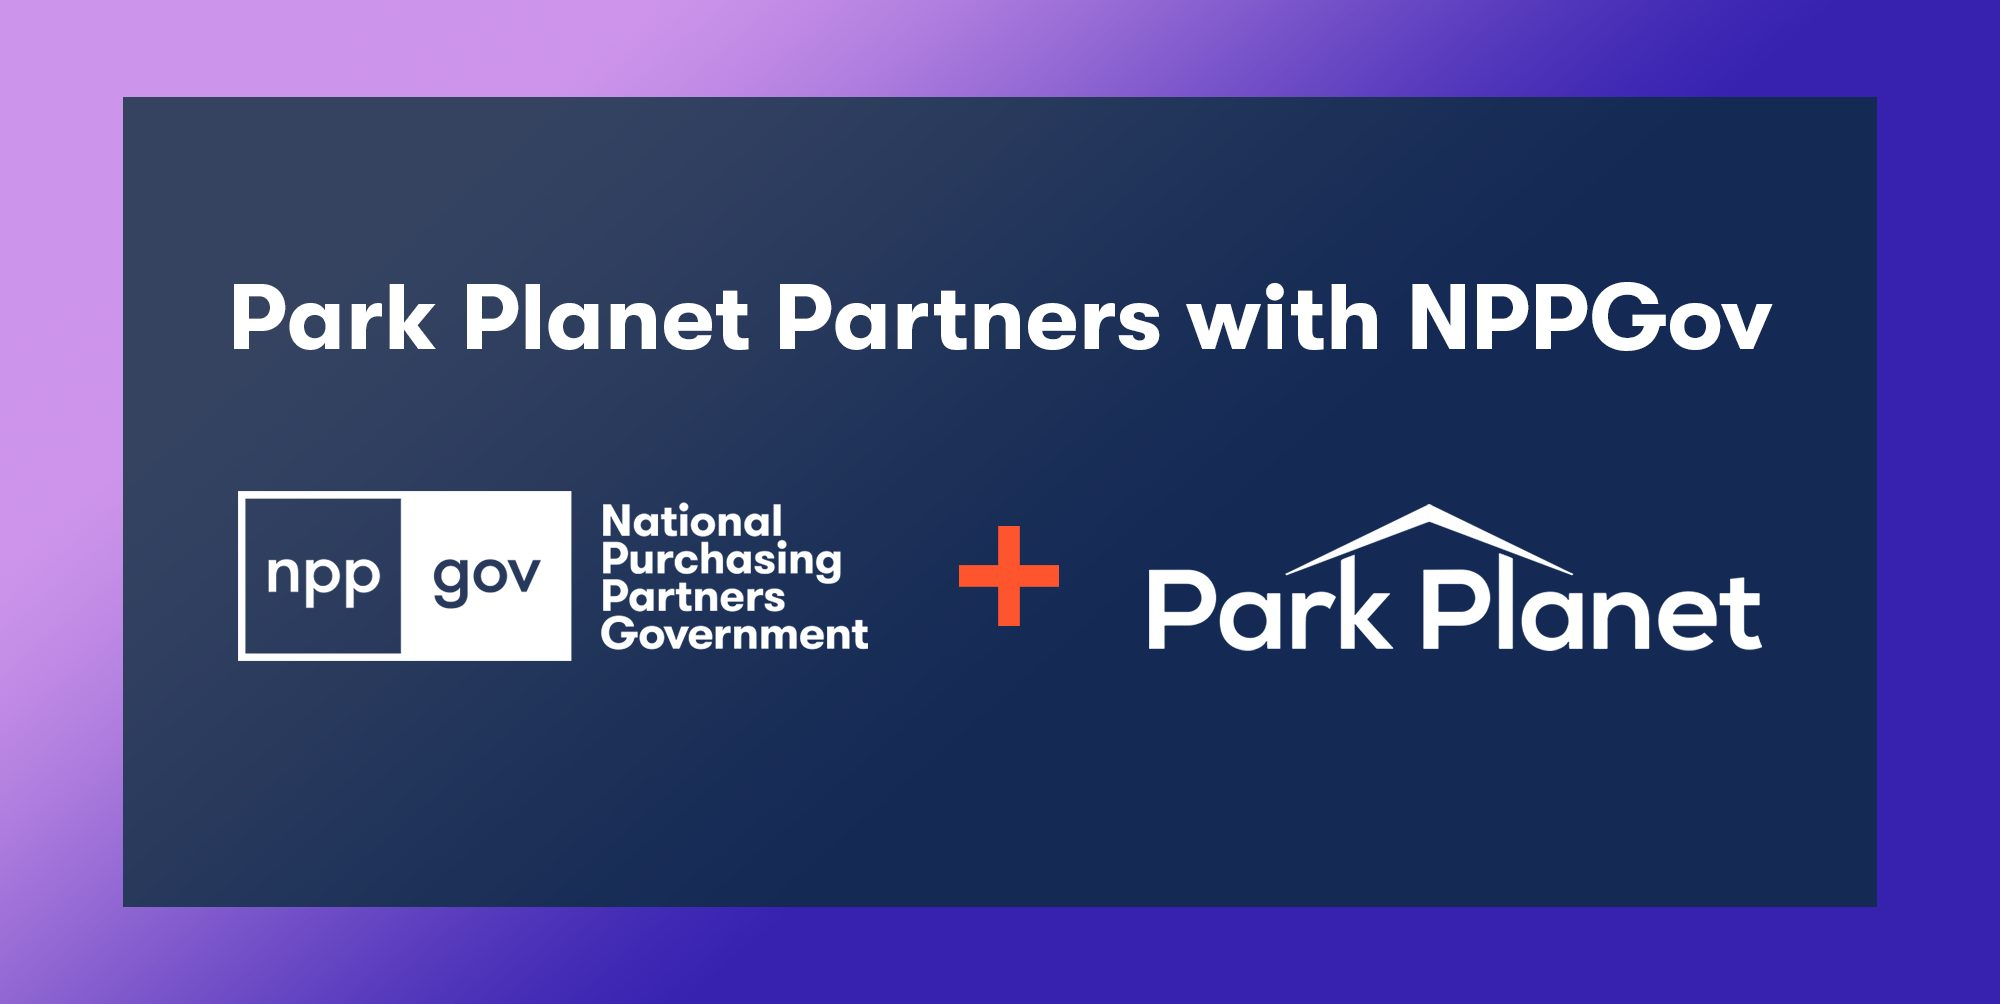 Park Planet Partners with NPPGov